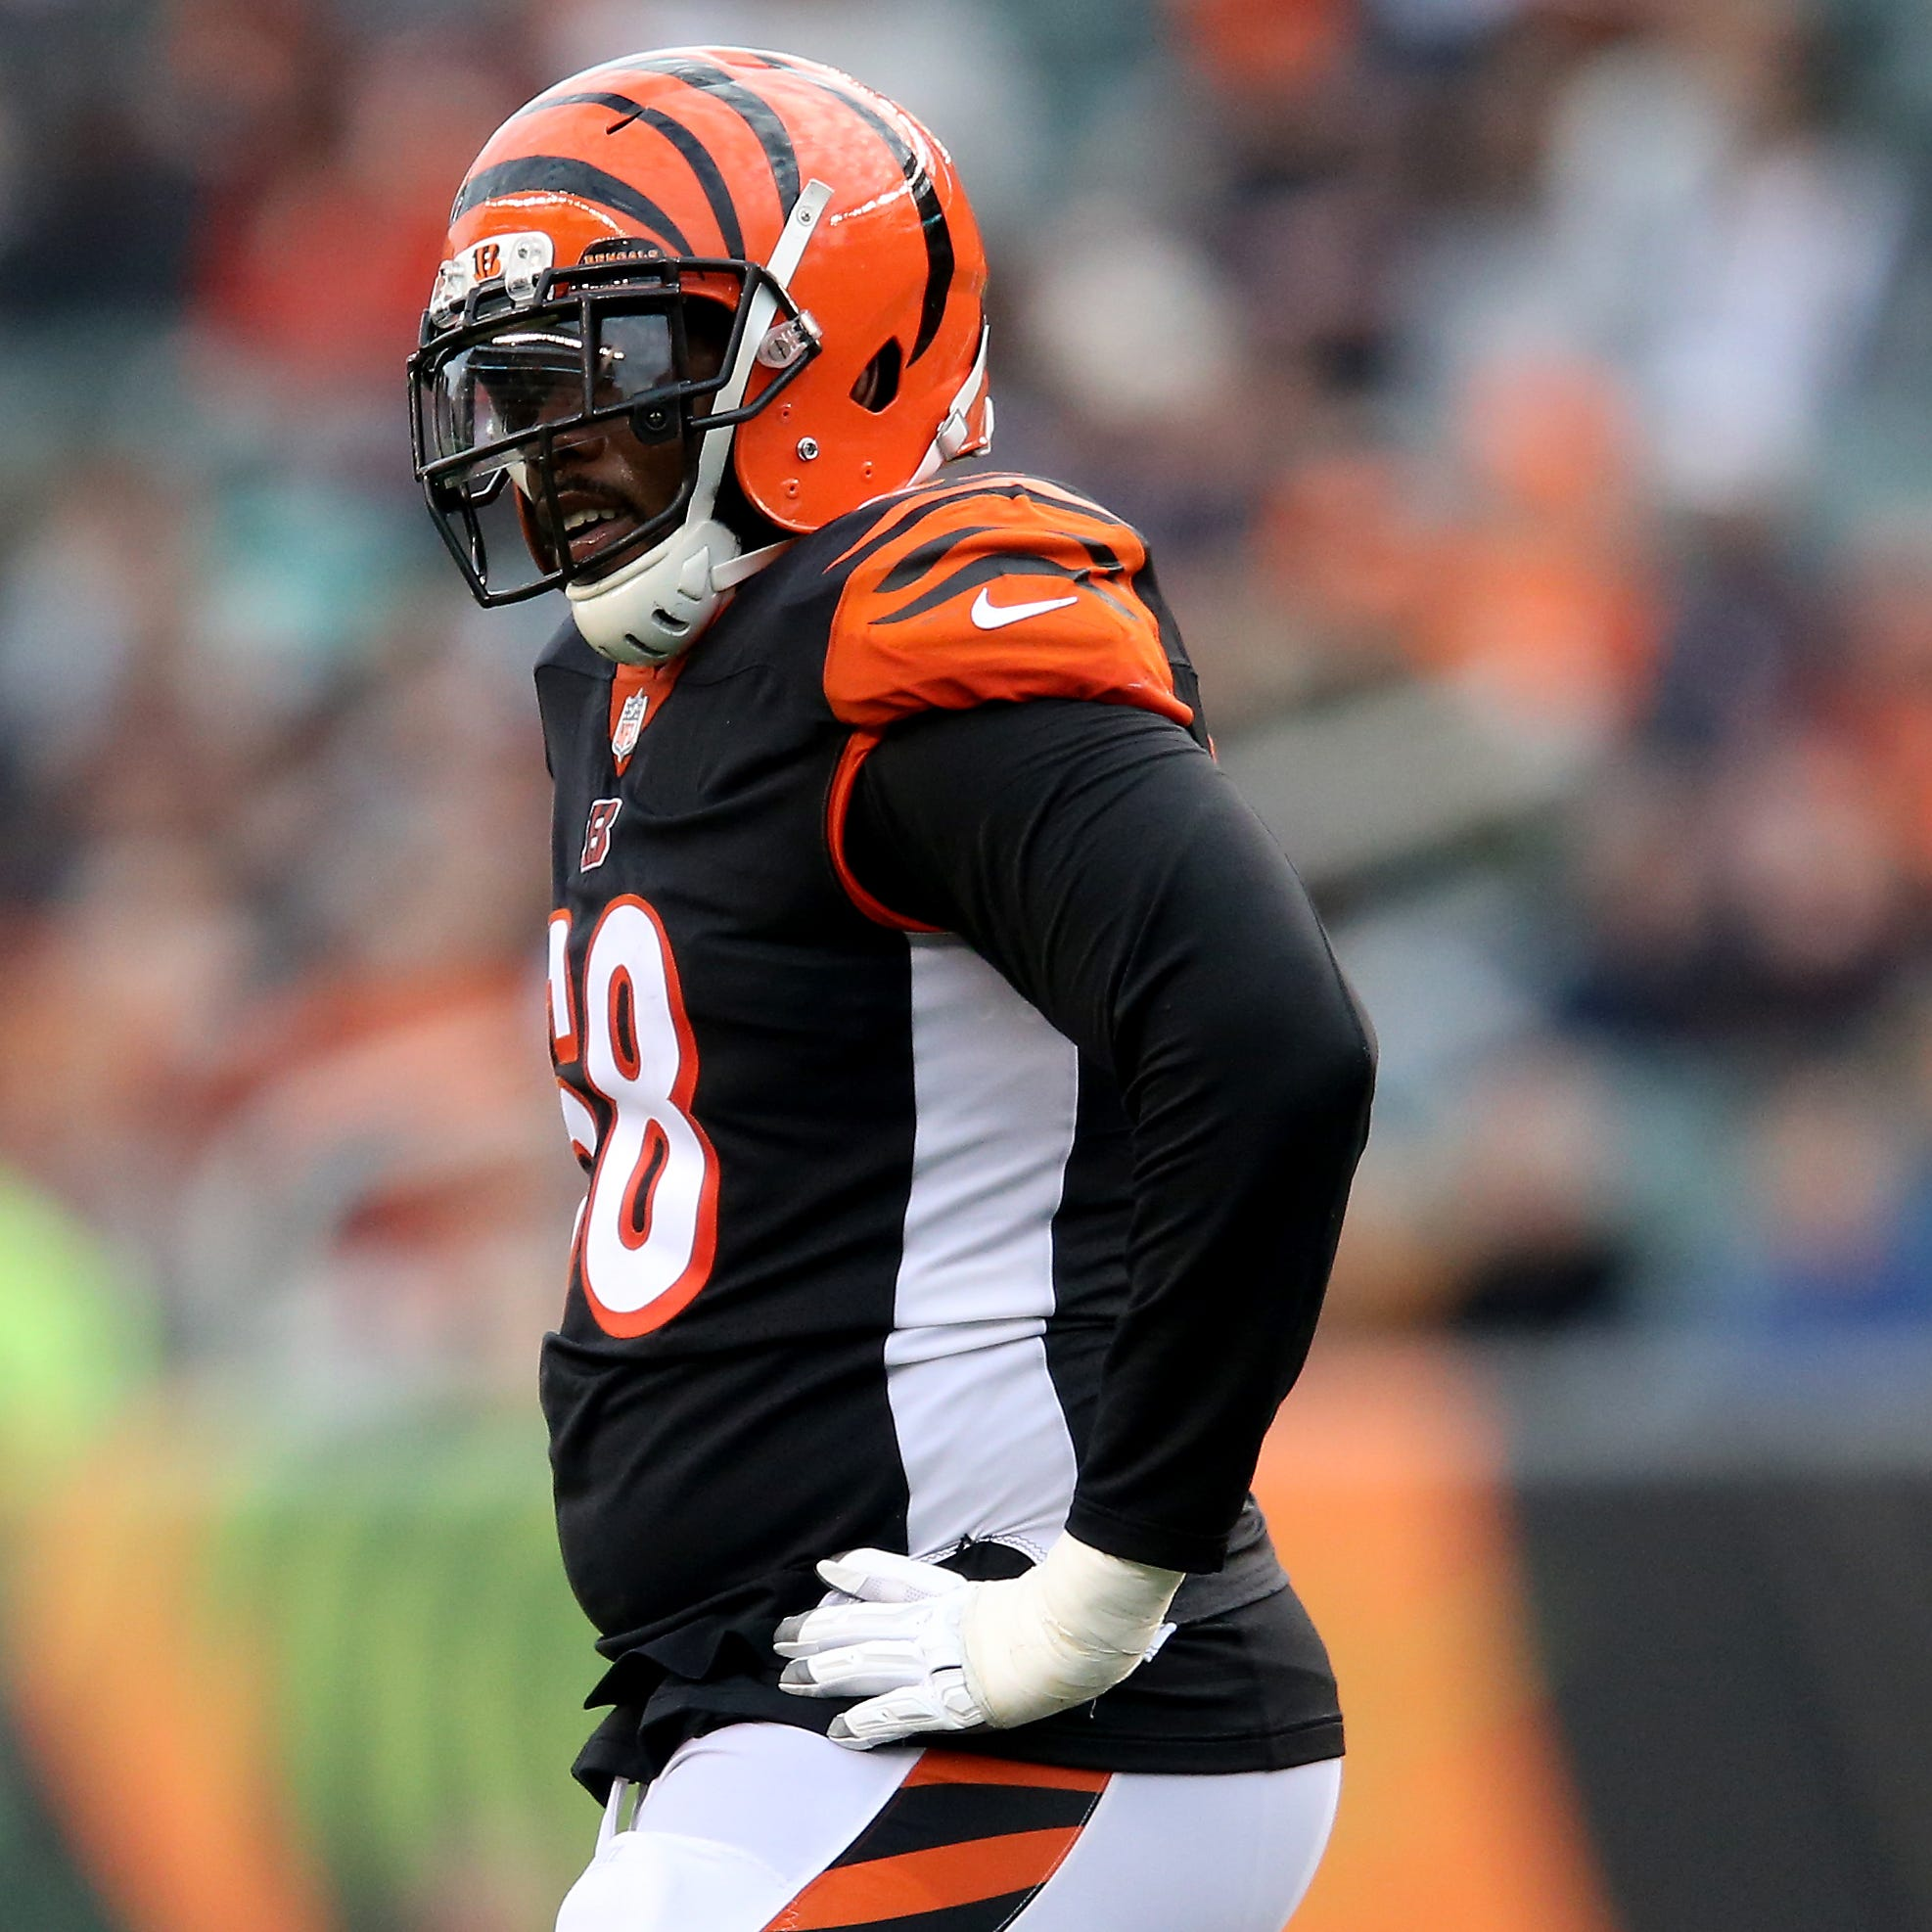 Paul Daugherty: 'New Dey,' just a 'deydream.' Still the same old Cincinnati Bengals.